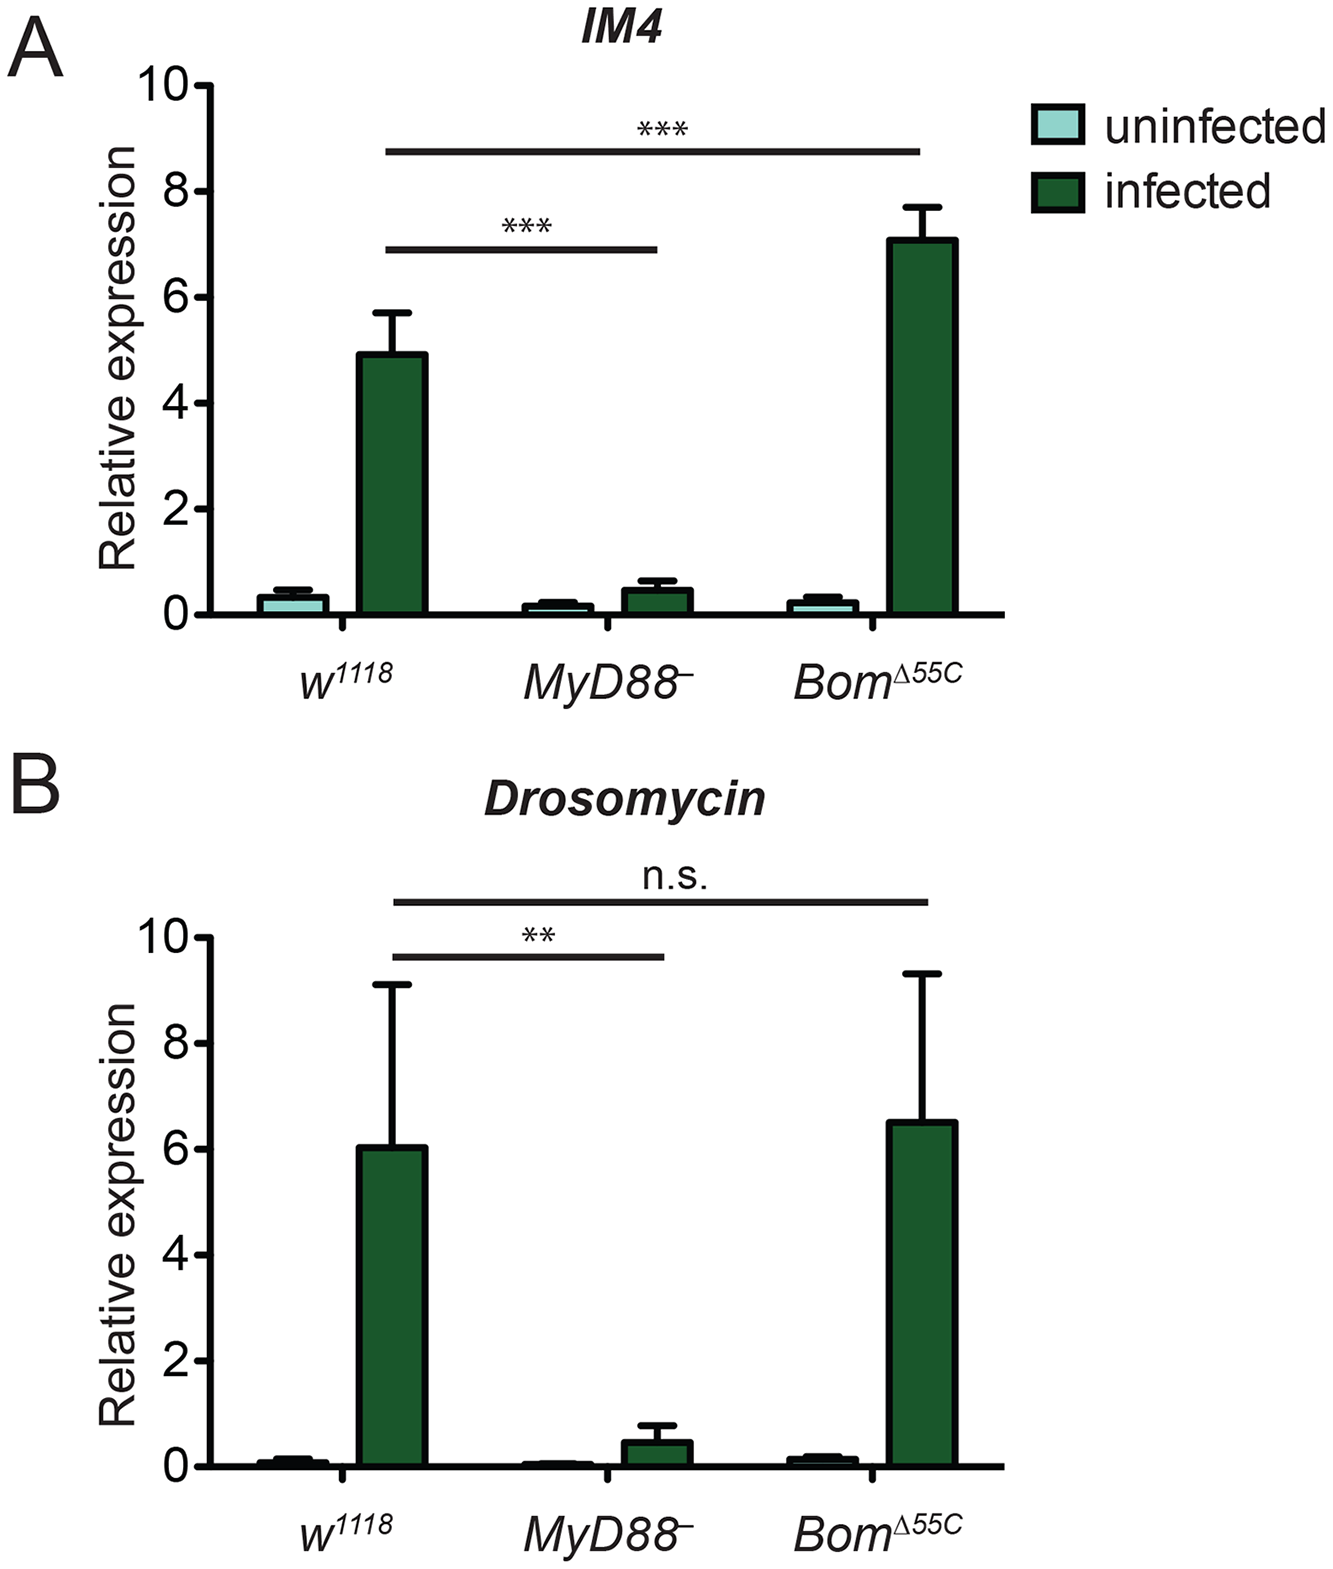 Toll-mediated activation of immune genes is normal in <i>Bom</i><sup><i>Δ55C</i></sup> flies.